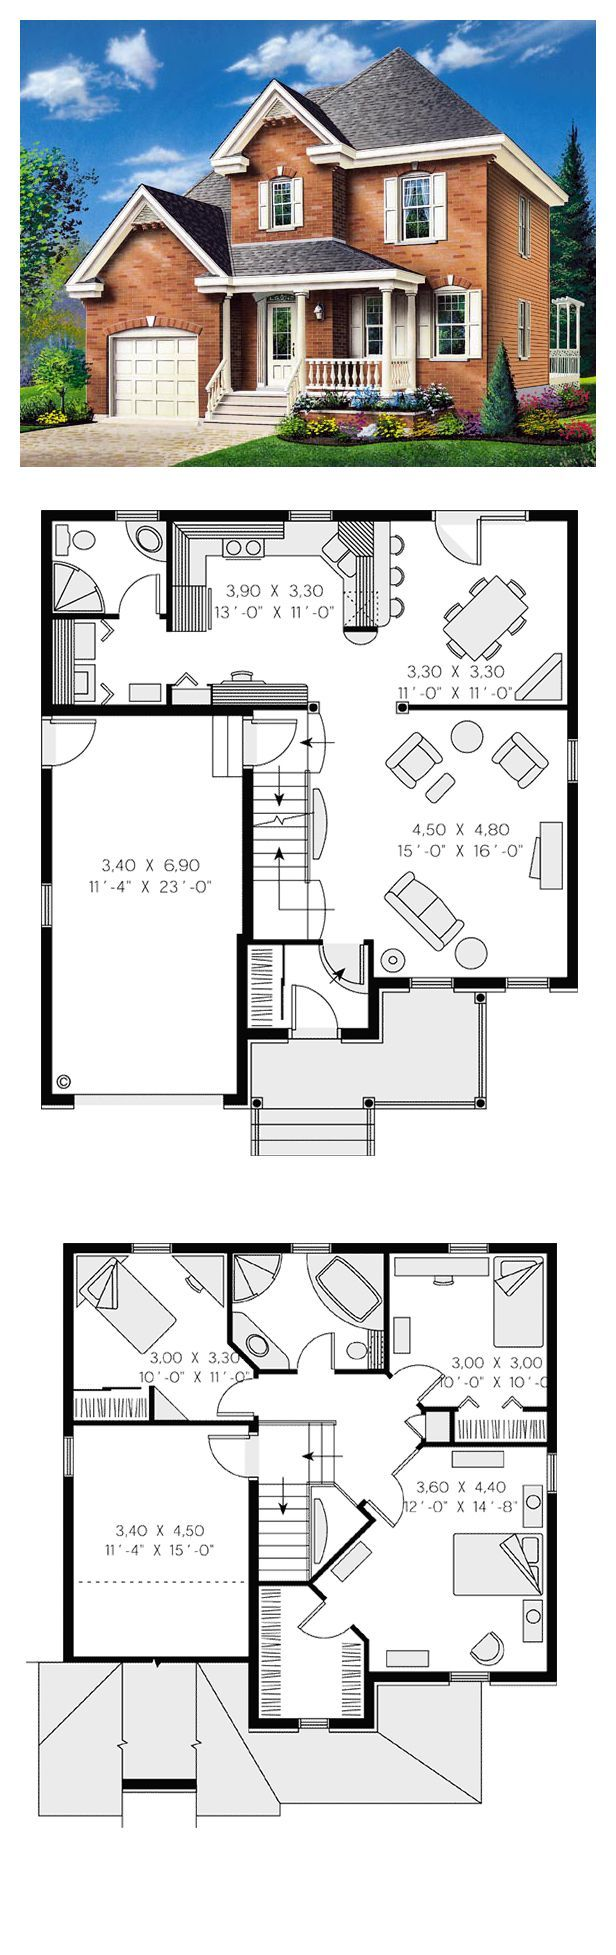 1875 Best My Floor Plans Images On Pinterest